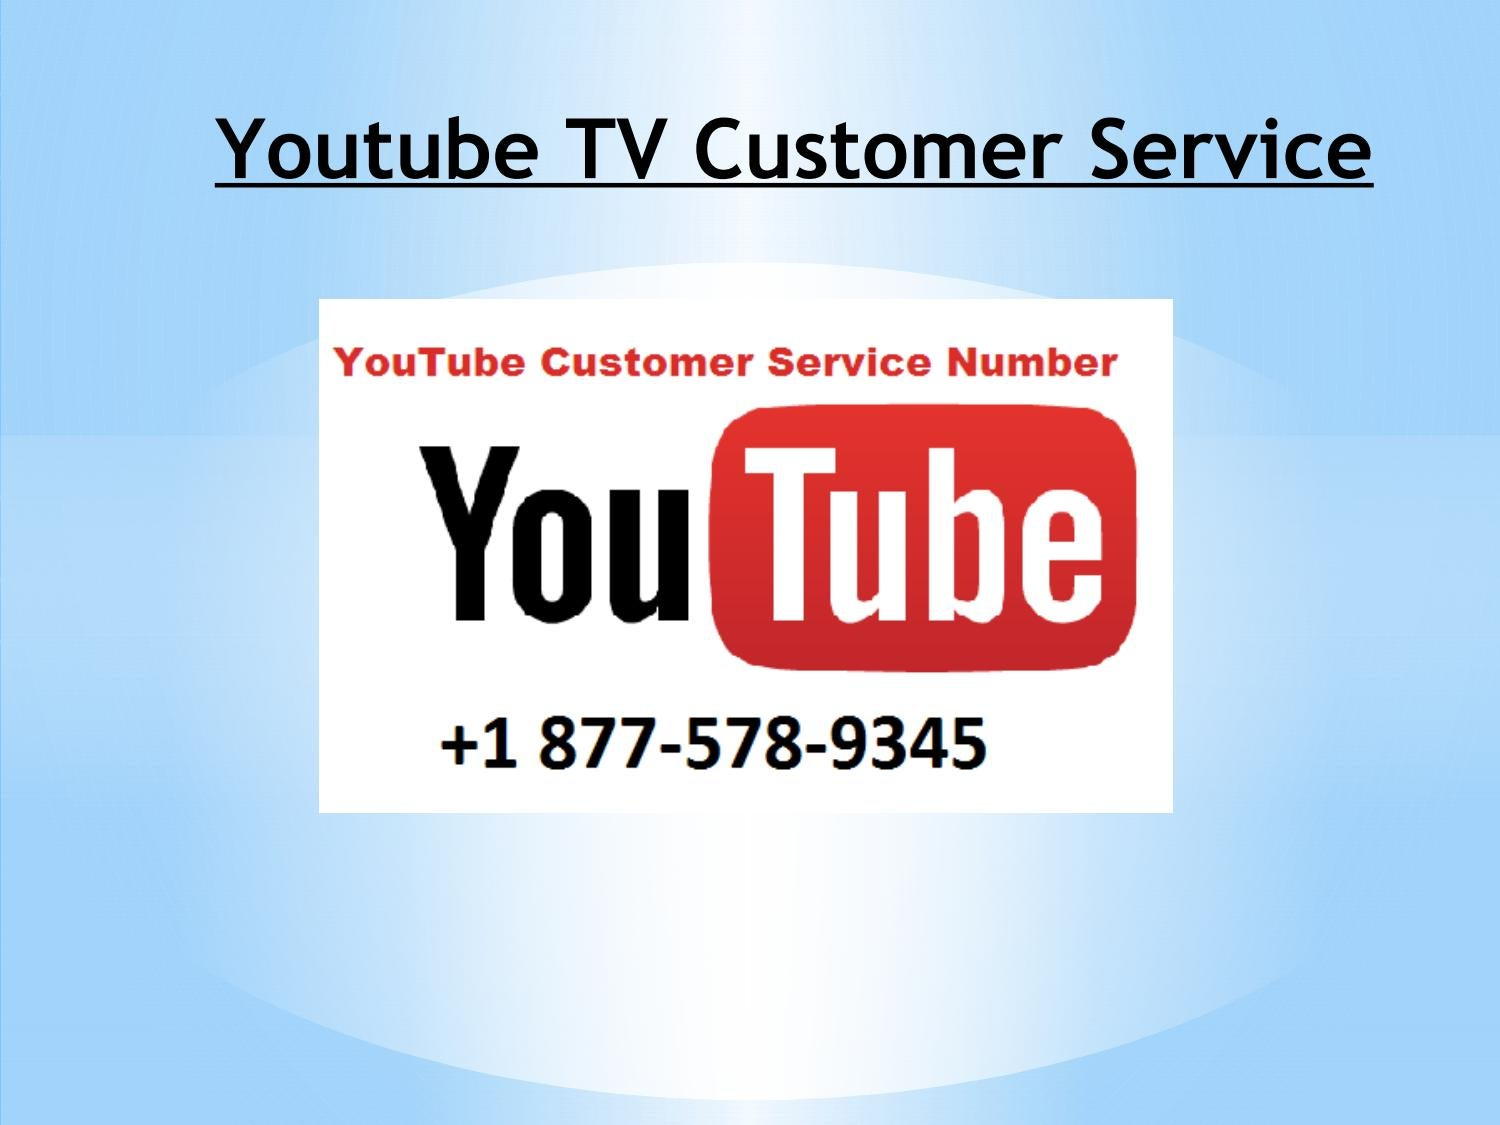 Youtube TV +1 877~578-9345 Technical Support Phone Number